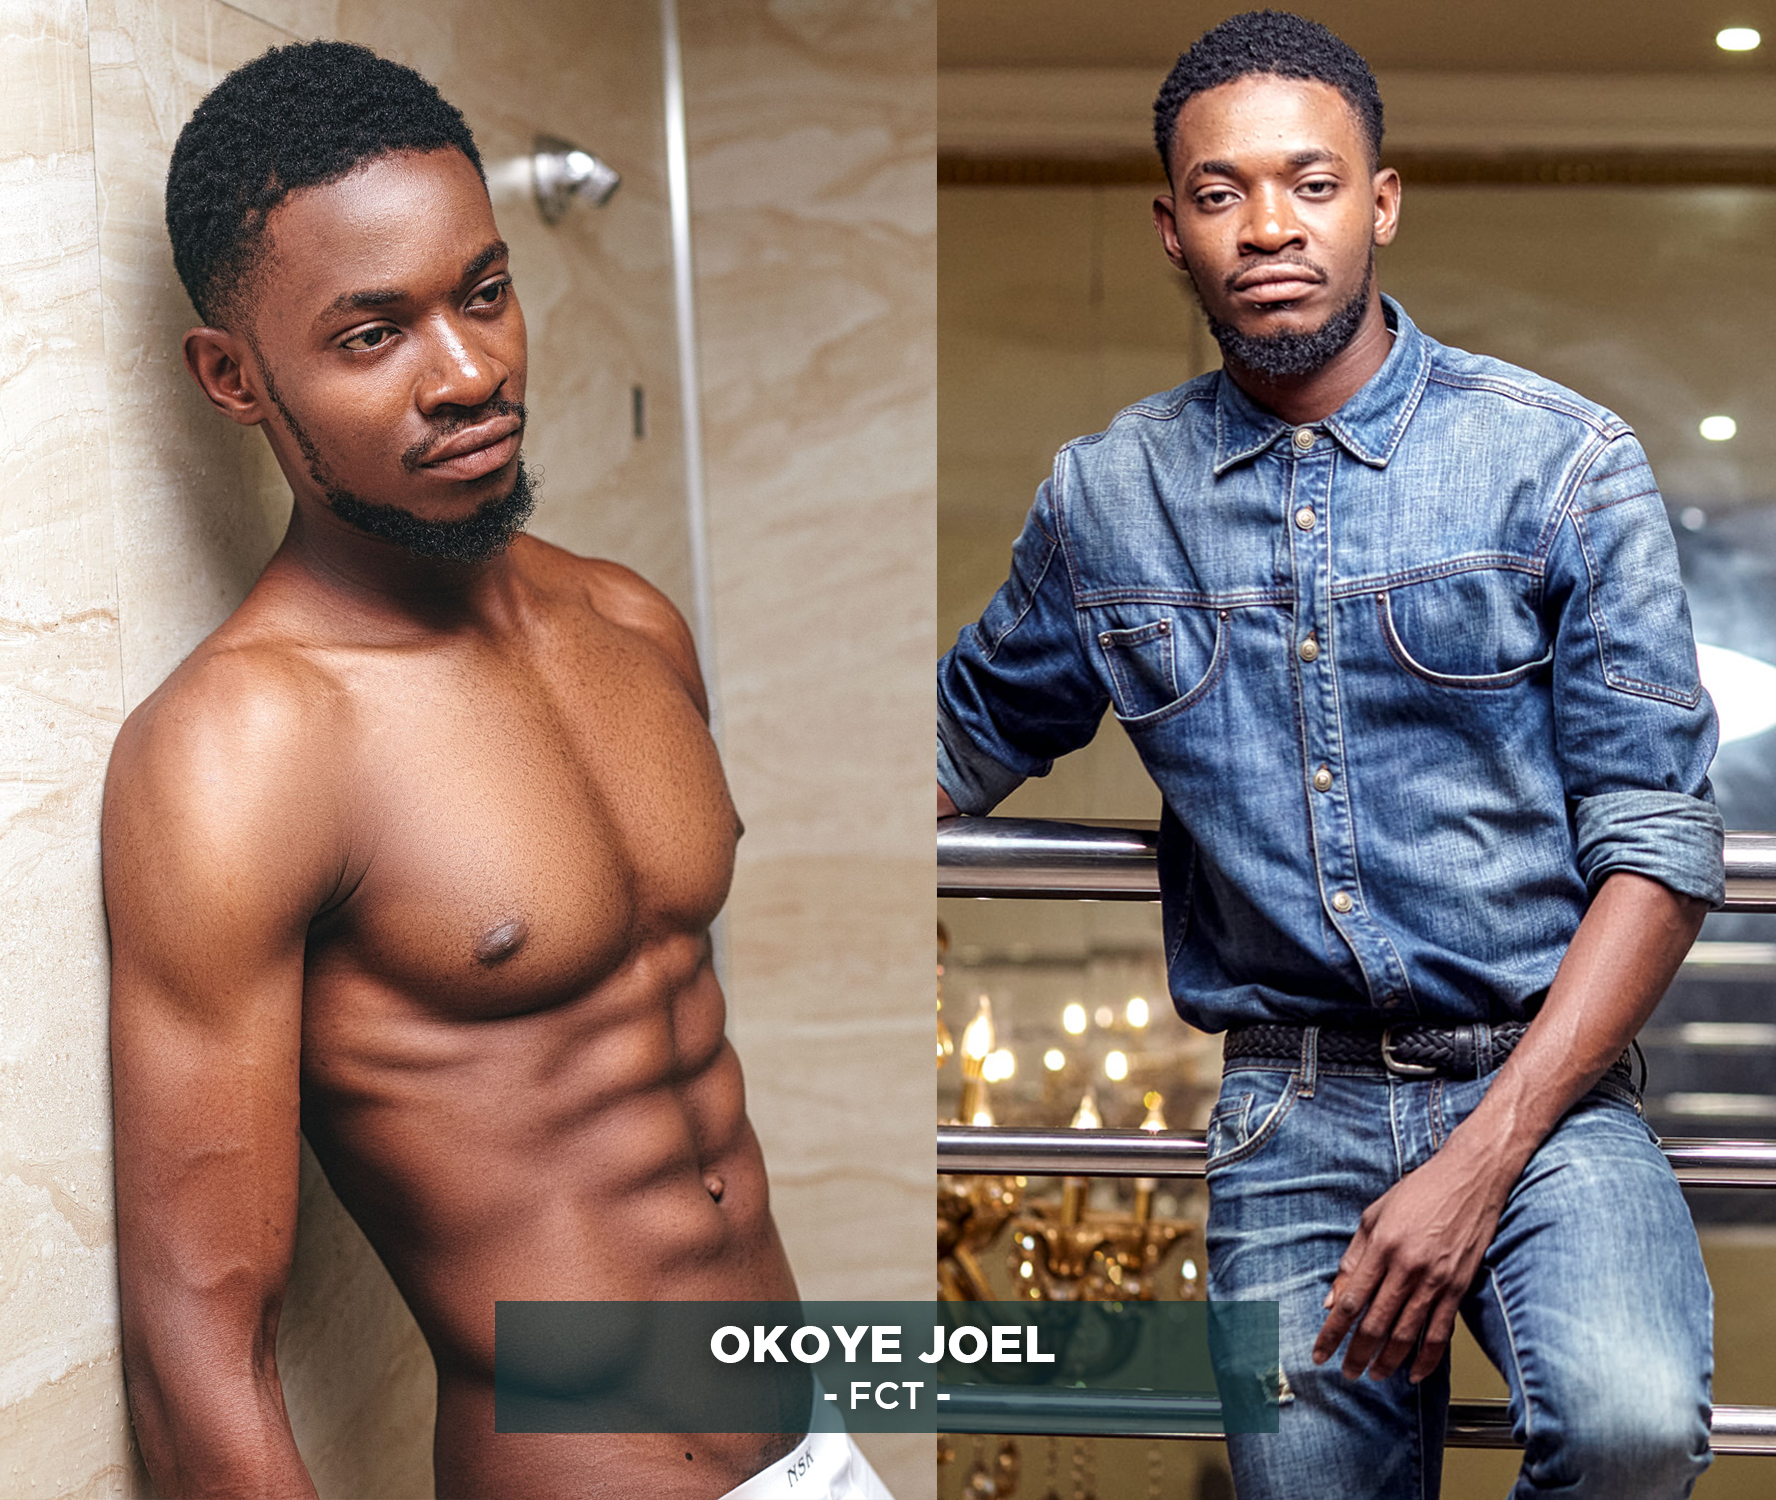 Photos of the new Mr. Universe Nigeria winner - Rasheed Adegoke Kolade